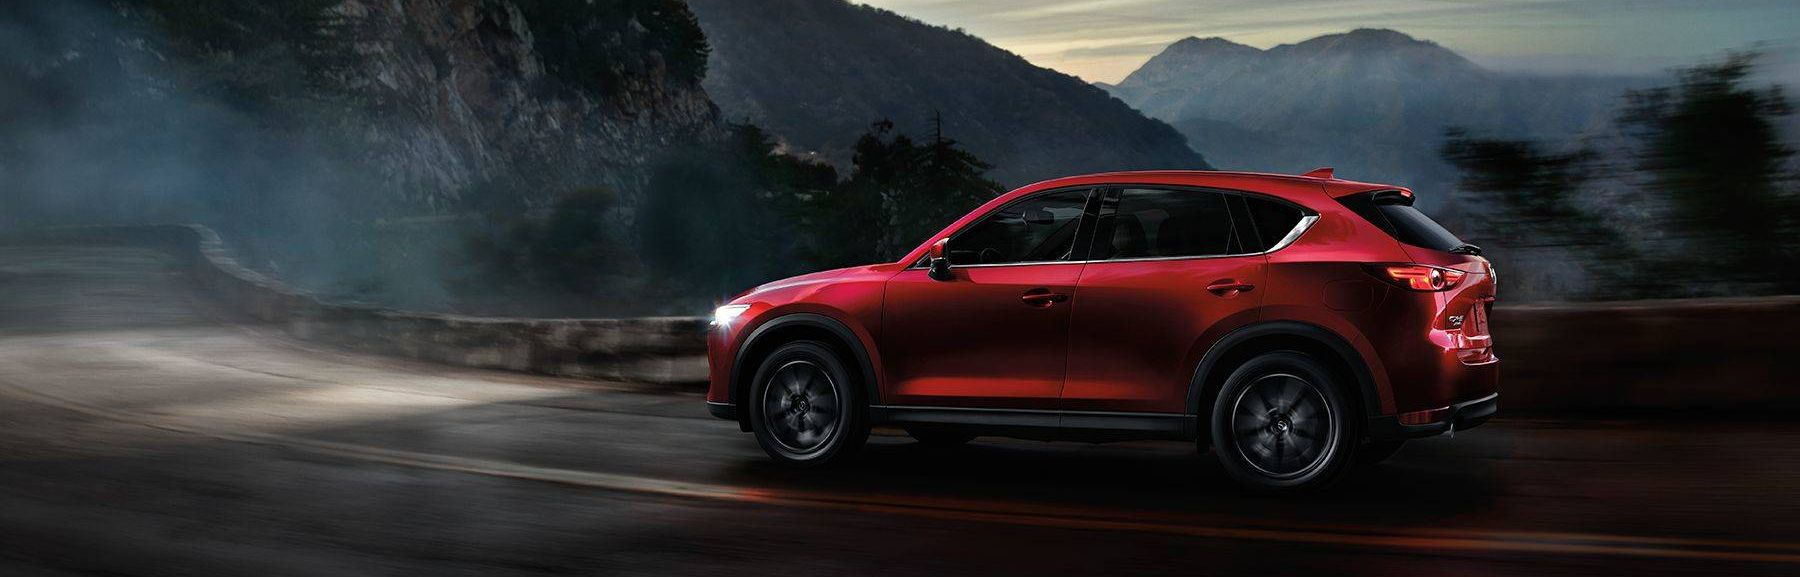 2018 Mazda CX-5 Financing near Houston, TX